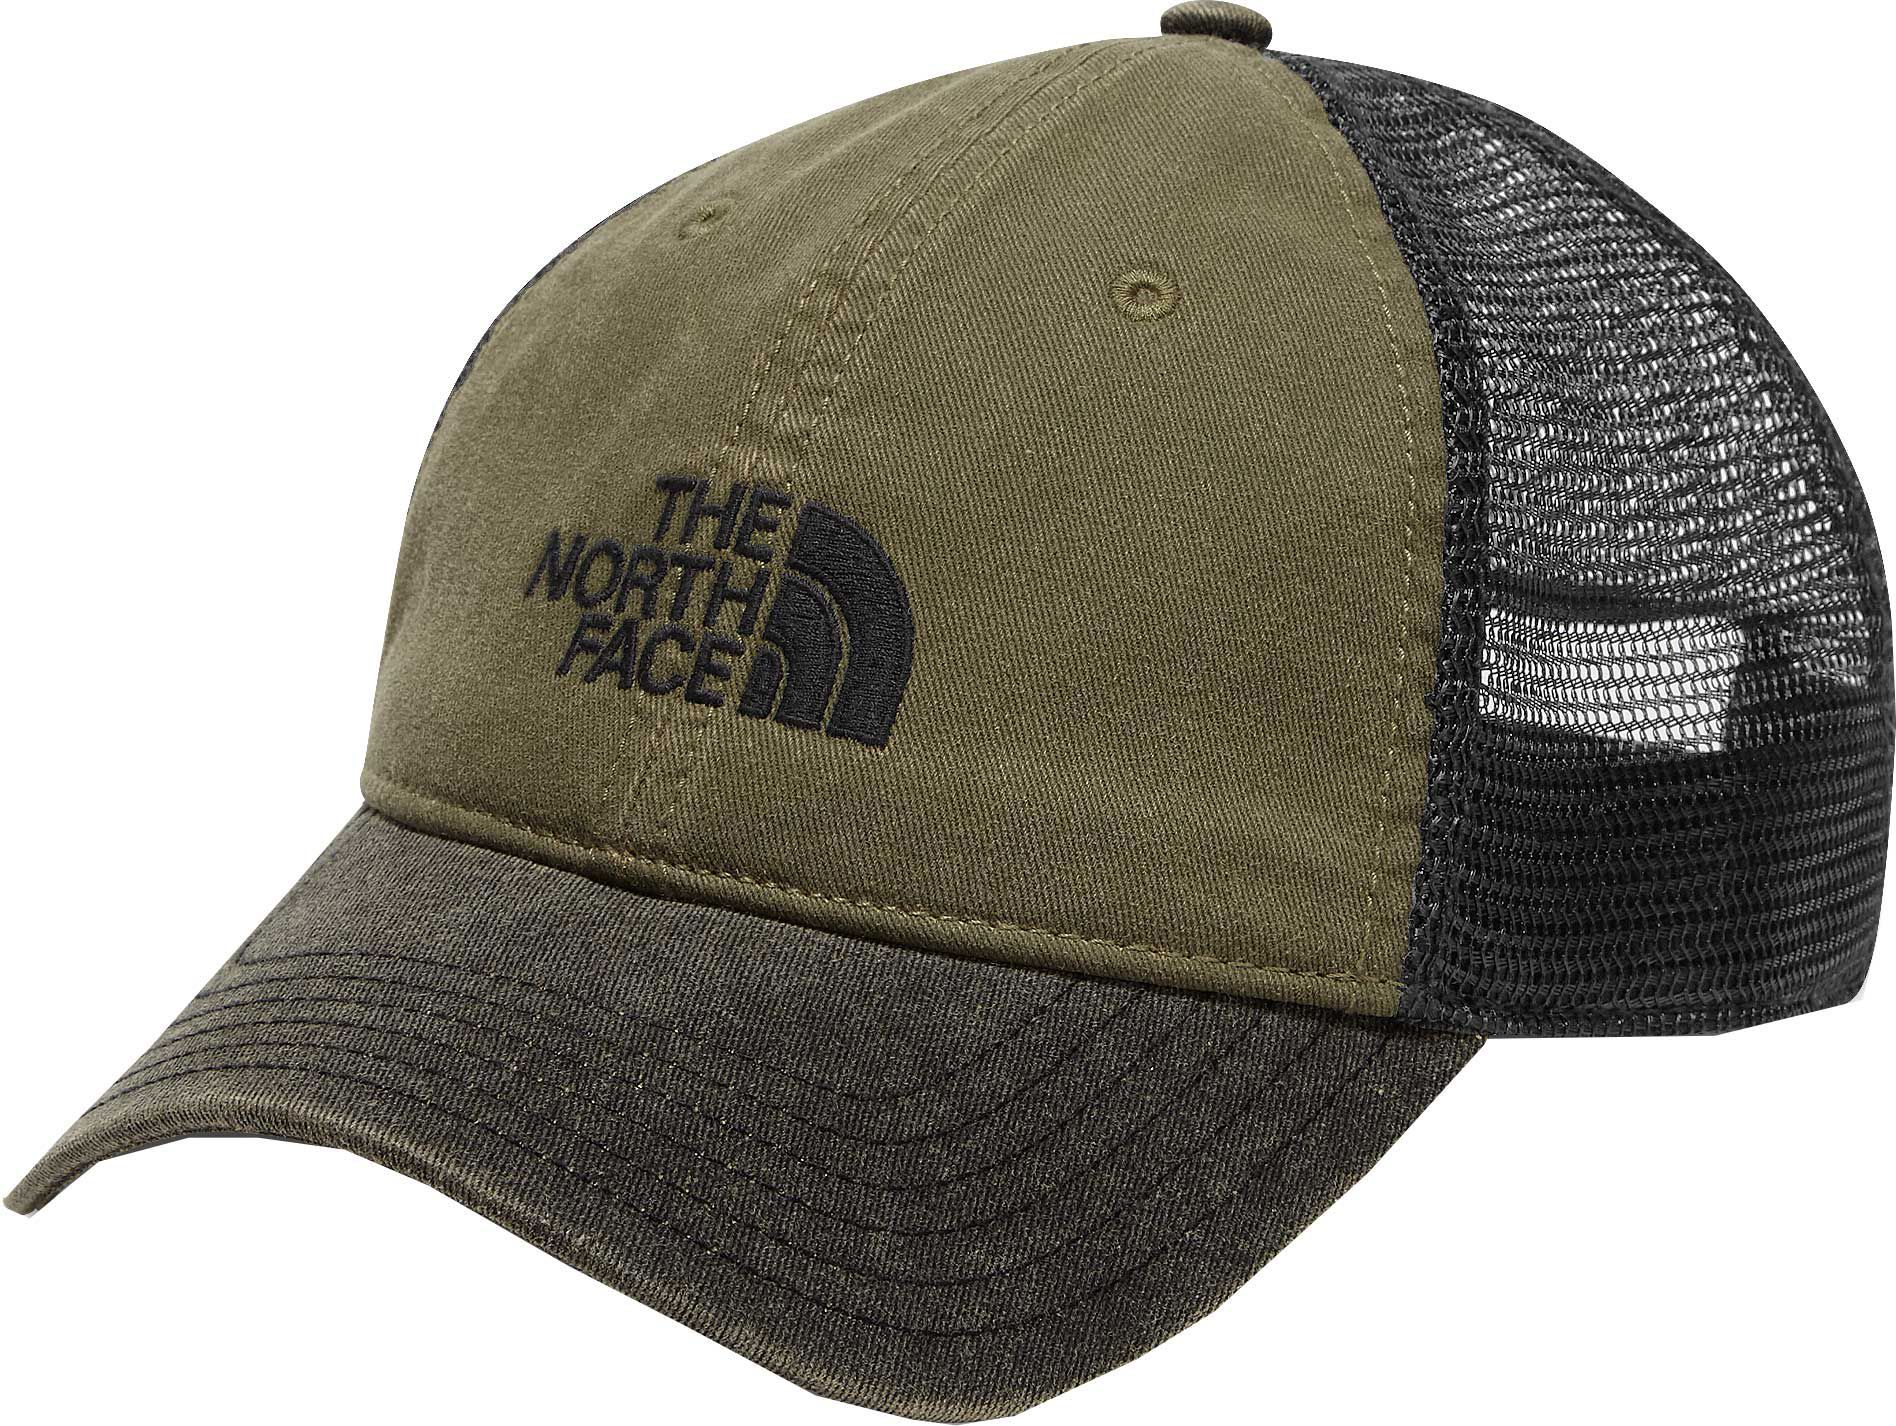 ccca85bd201aa The North Face Men's Broken In Trucker Hat | Products | Hats, North ...